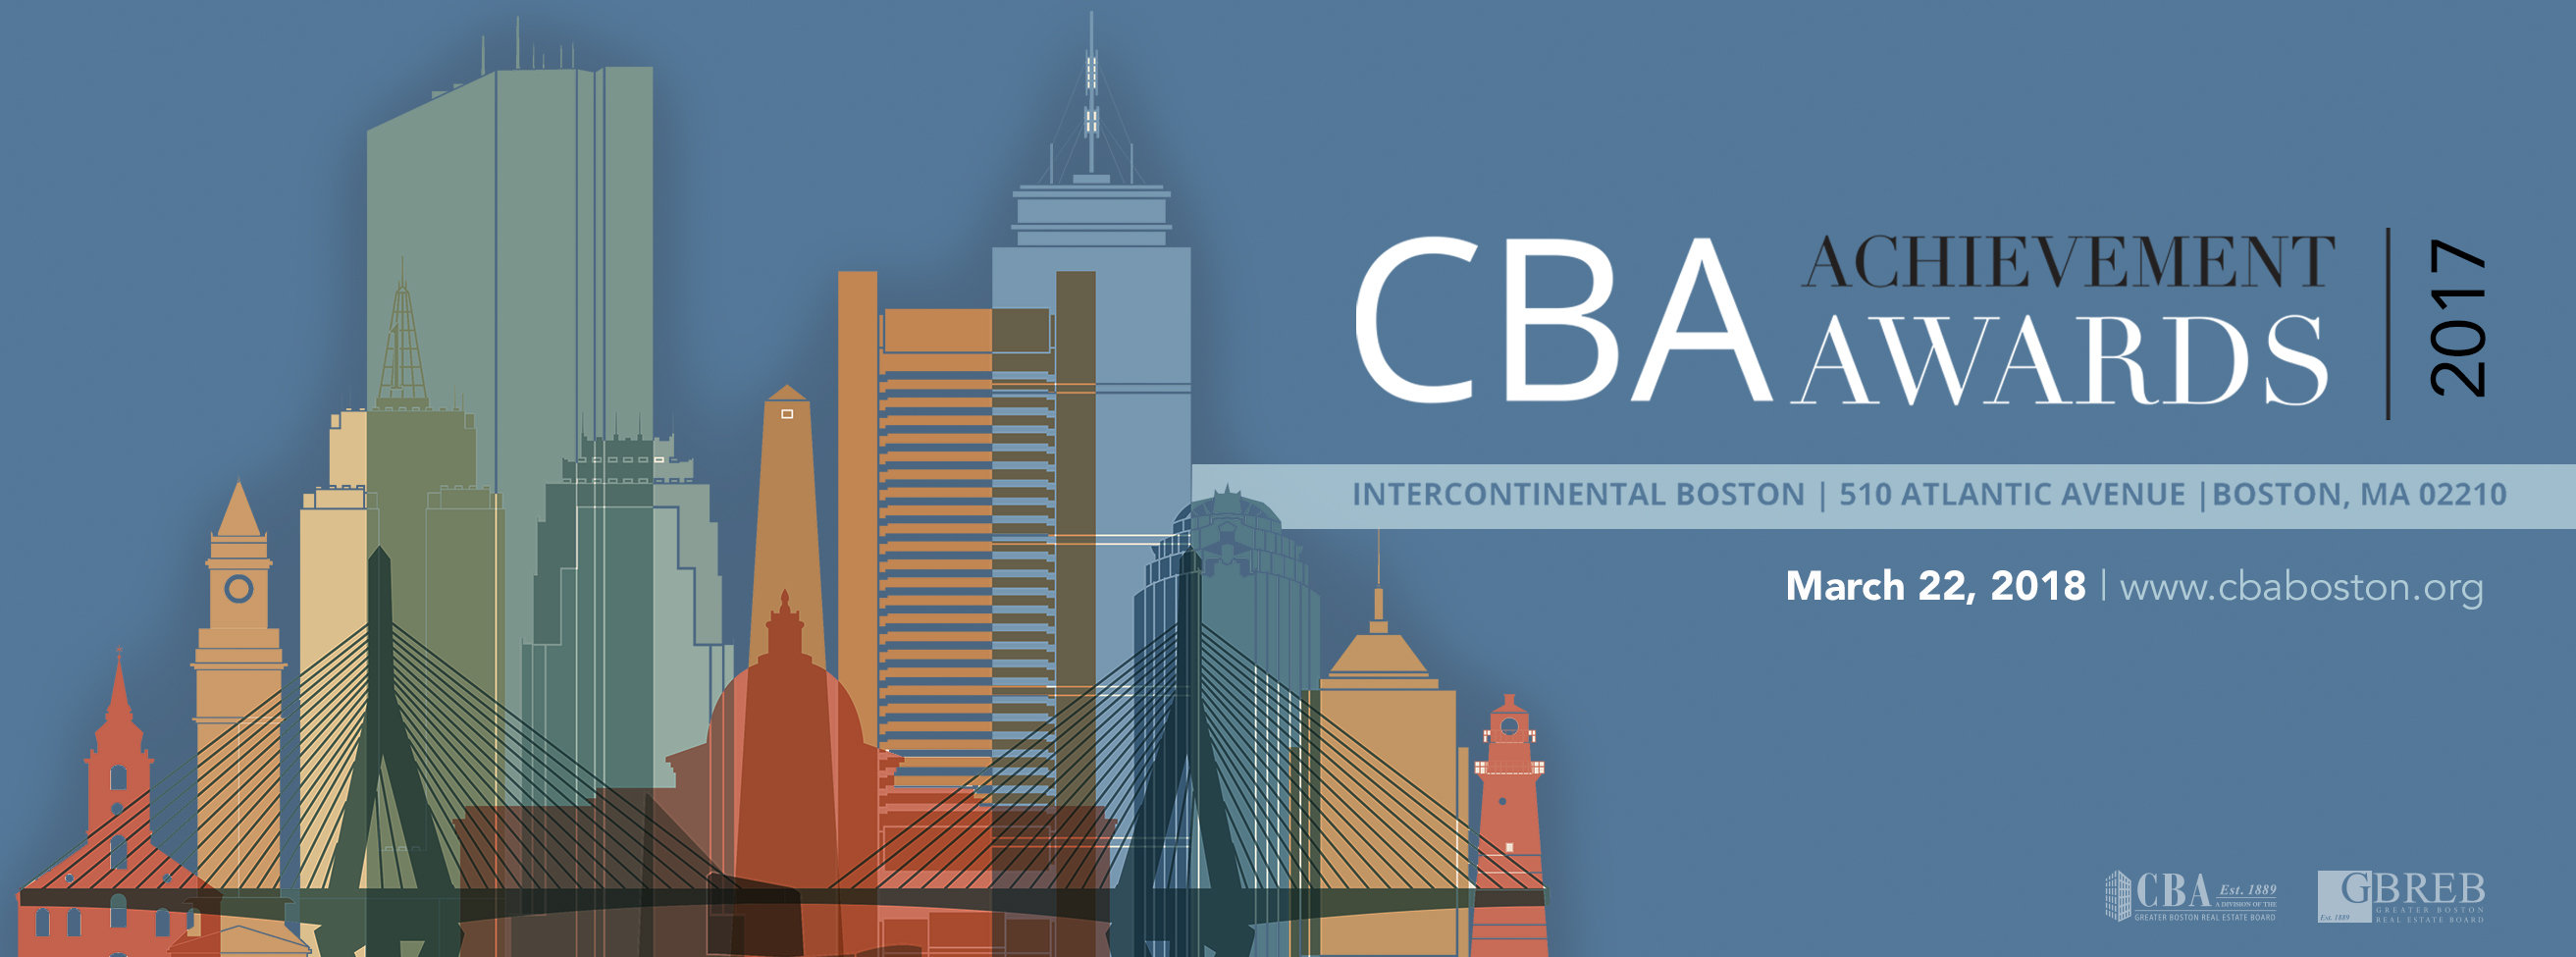 2017 CBA Achievement Awards